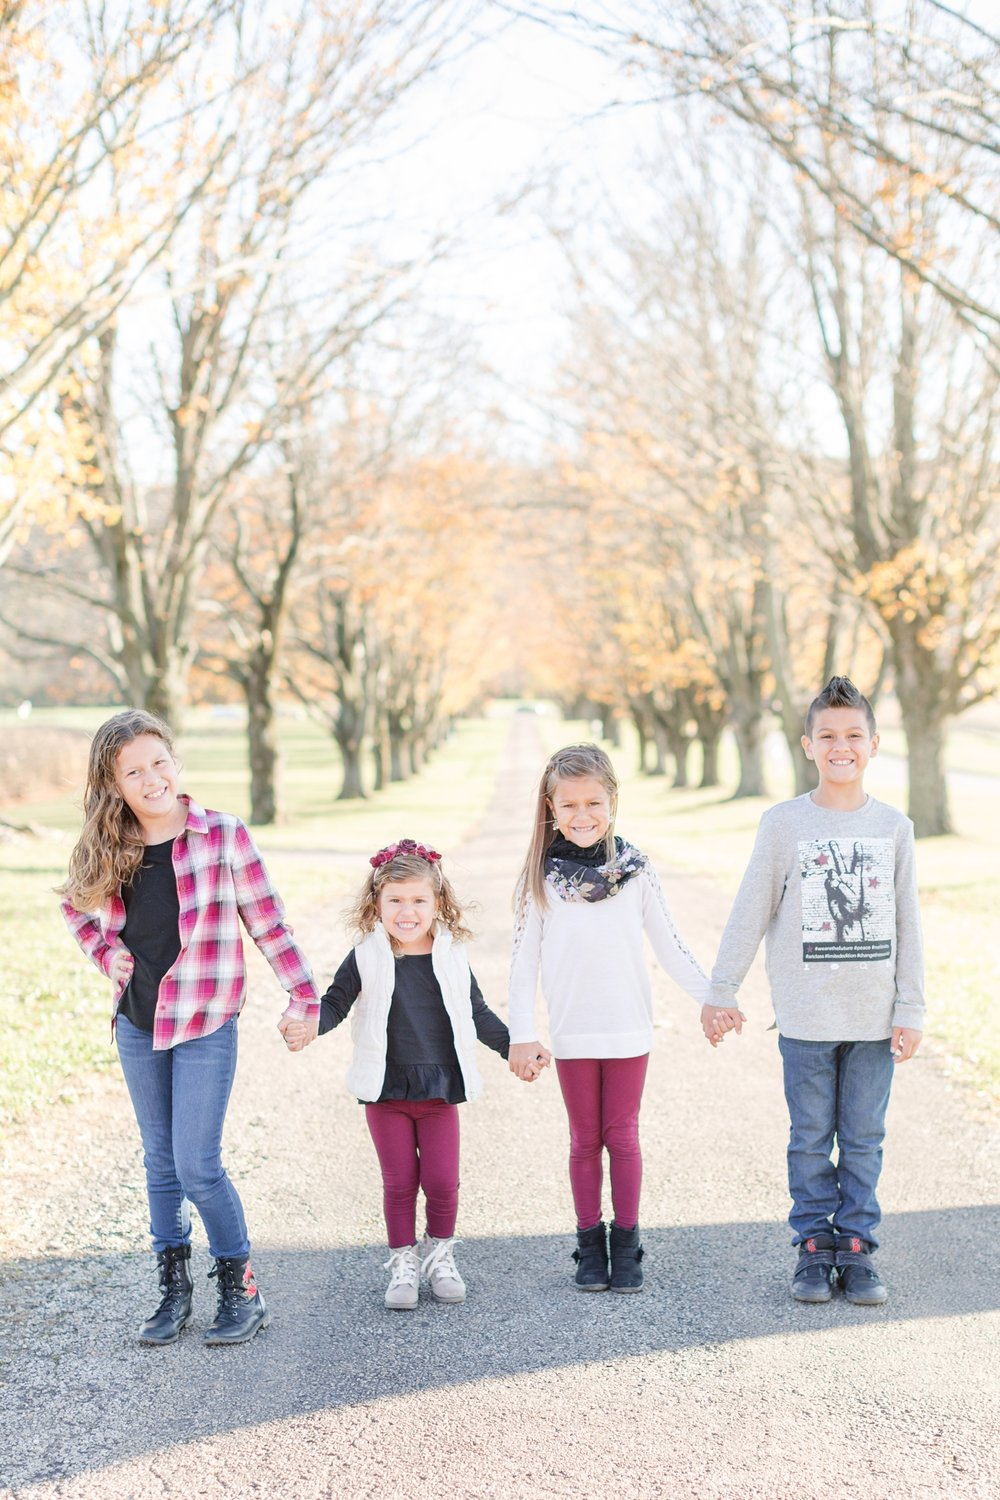 Weddle Family-7_baltimore-maryland-family-photographer-ravens-family-photos-anna-grace-photography-photo.jpg